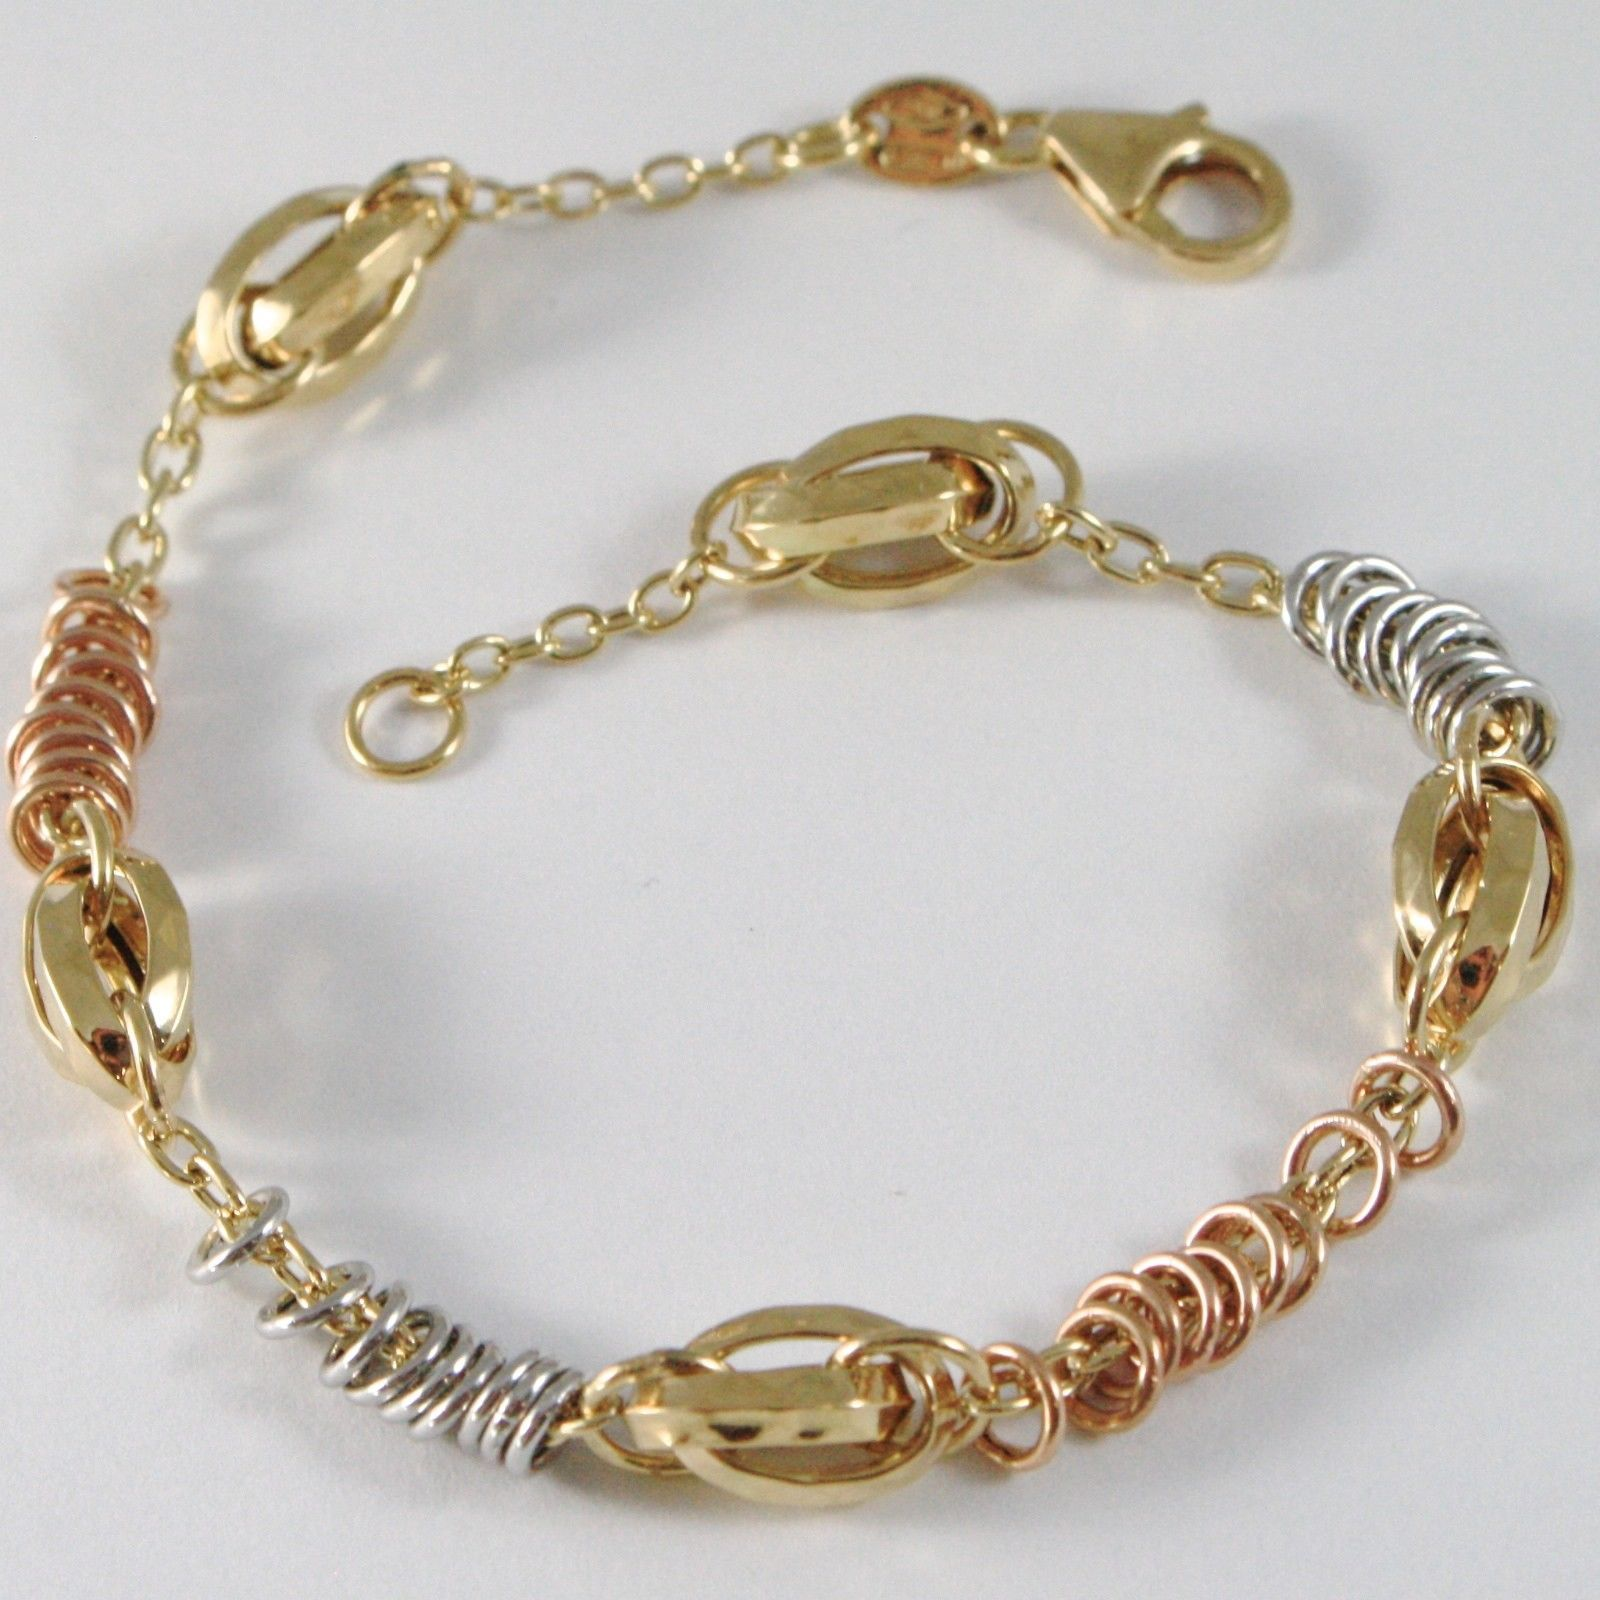 18k YELLOW WHITE ROSE GOLD BRACELET, ROLO, CIRCLES AND WORKED OVALS, ITALY MADE